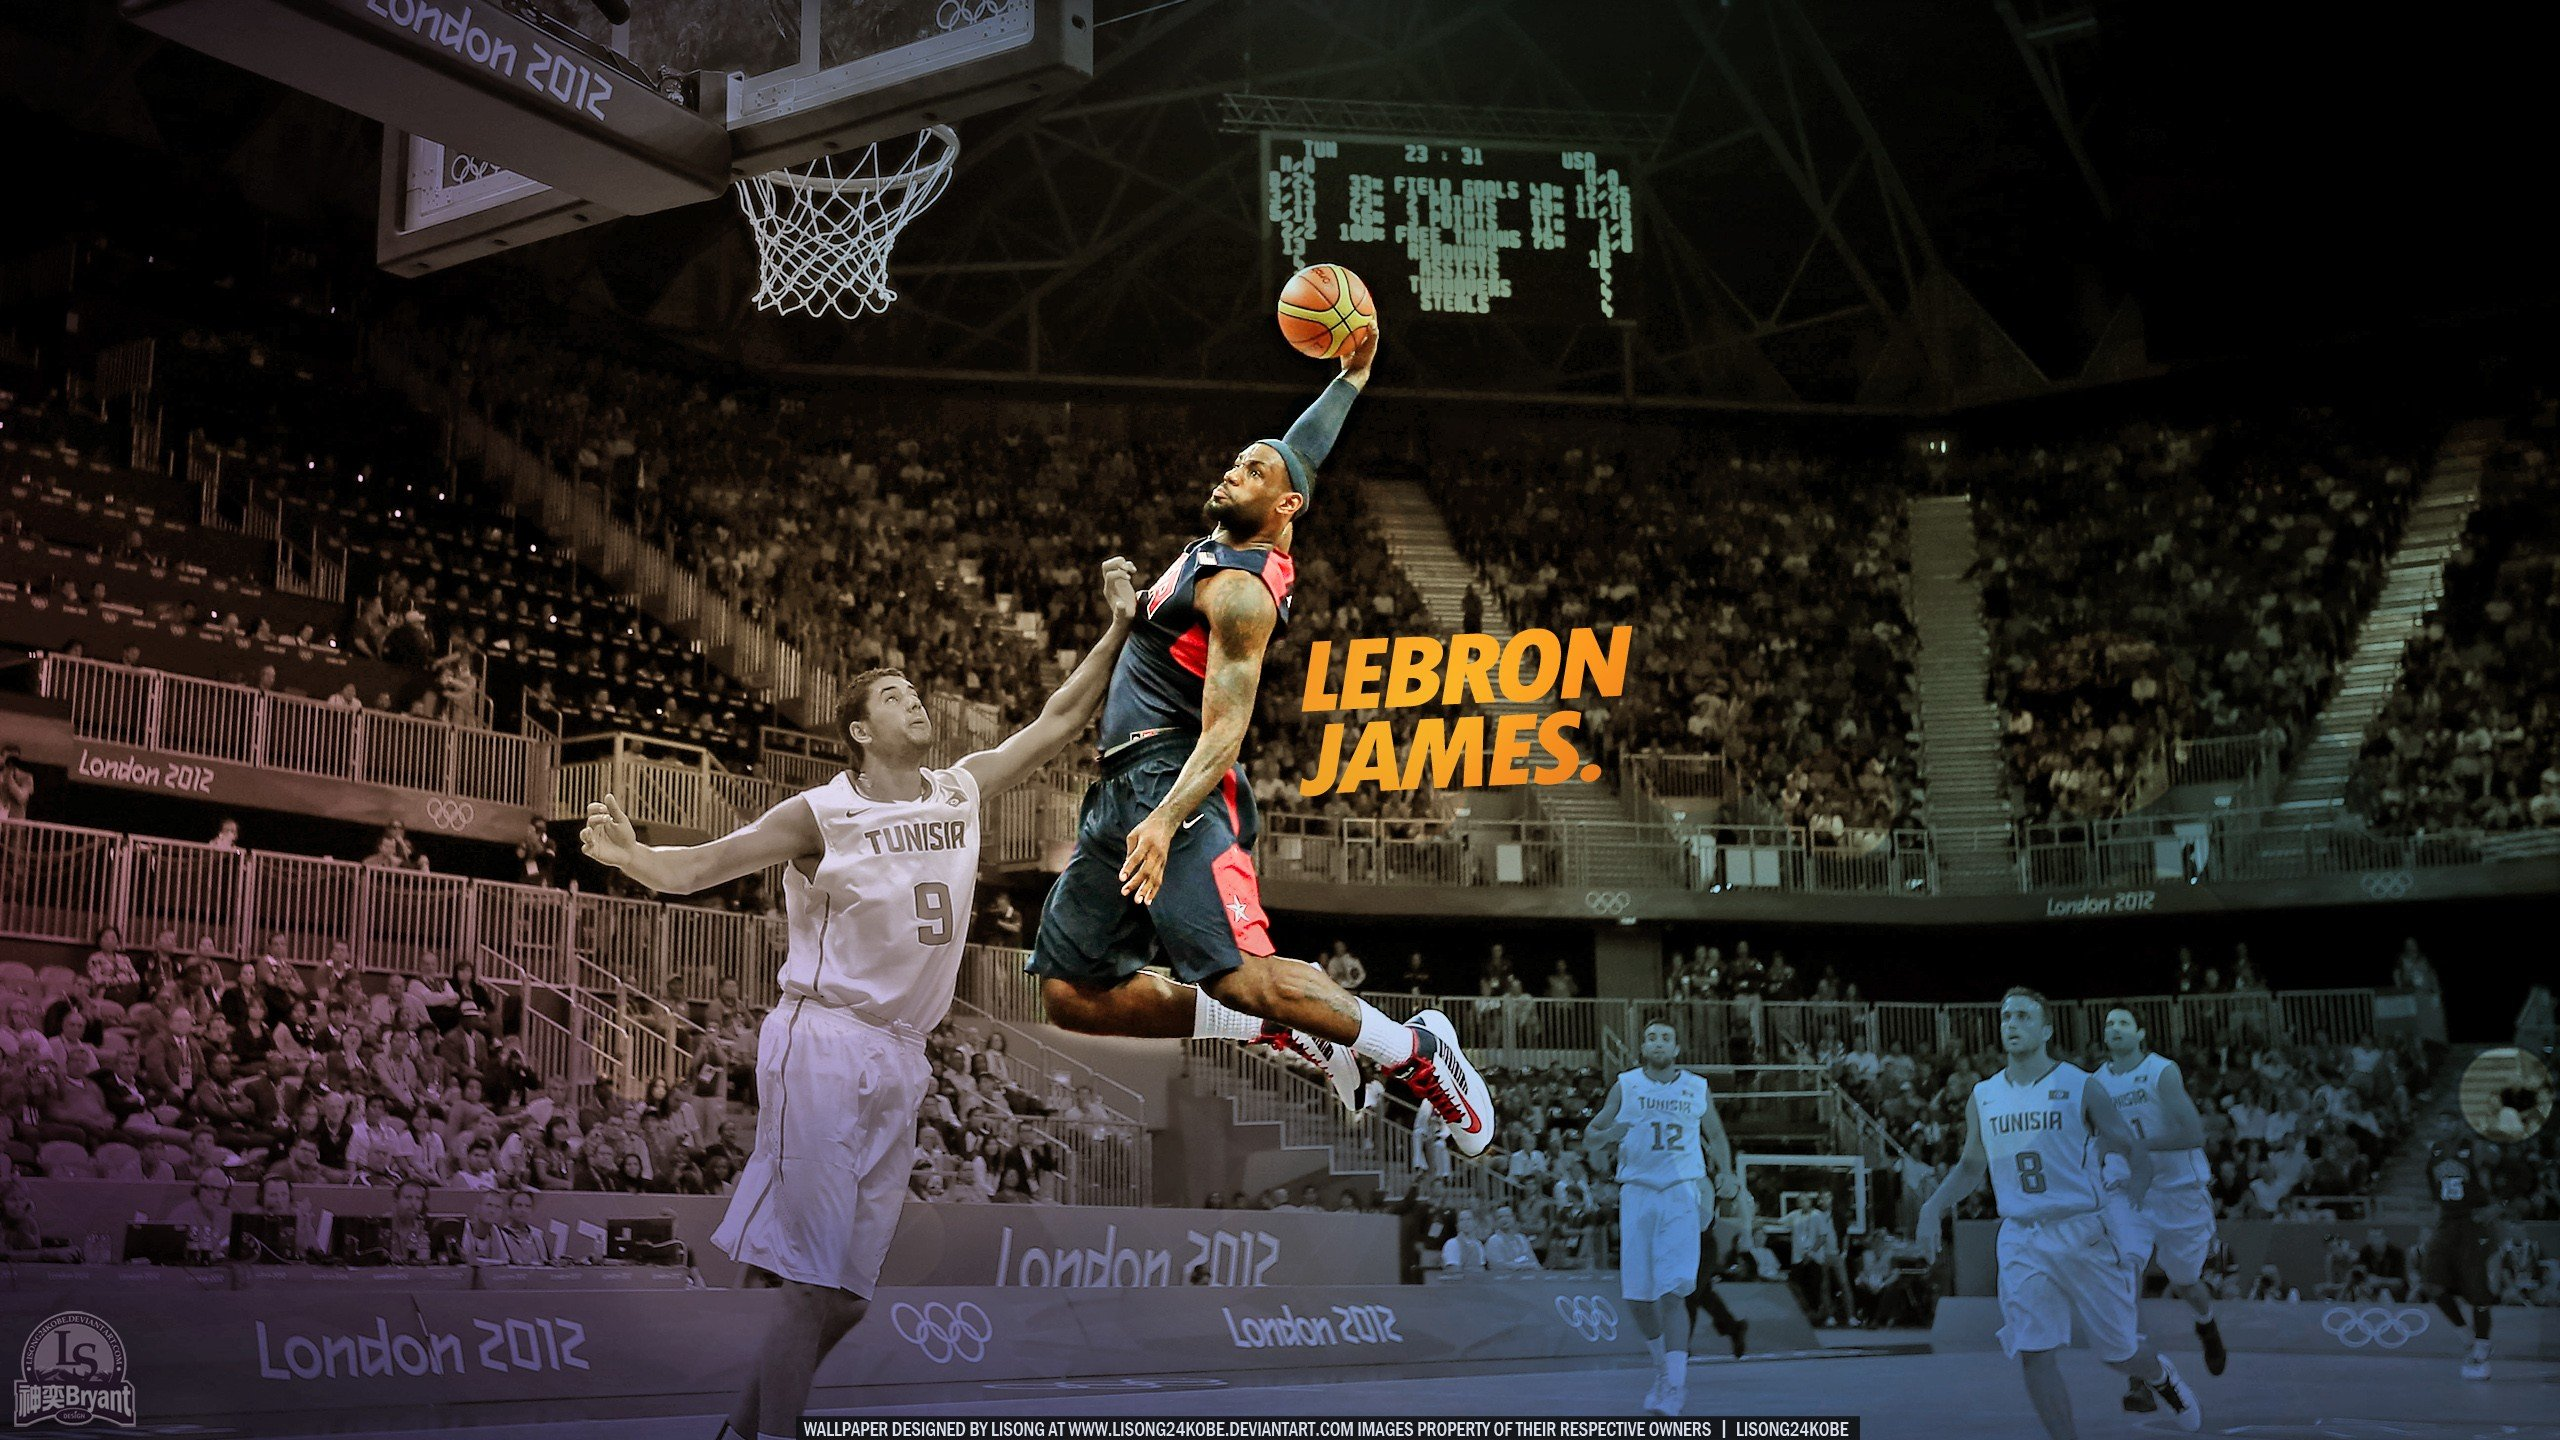 NBA Dunks Wallpaper - WallpaperSafari